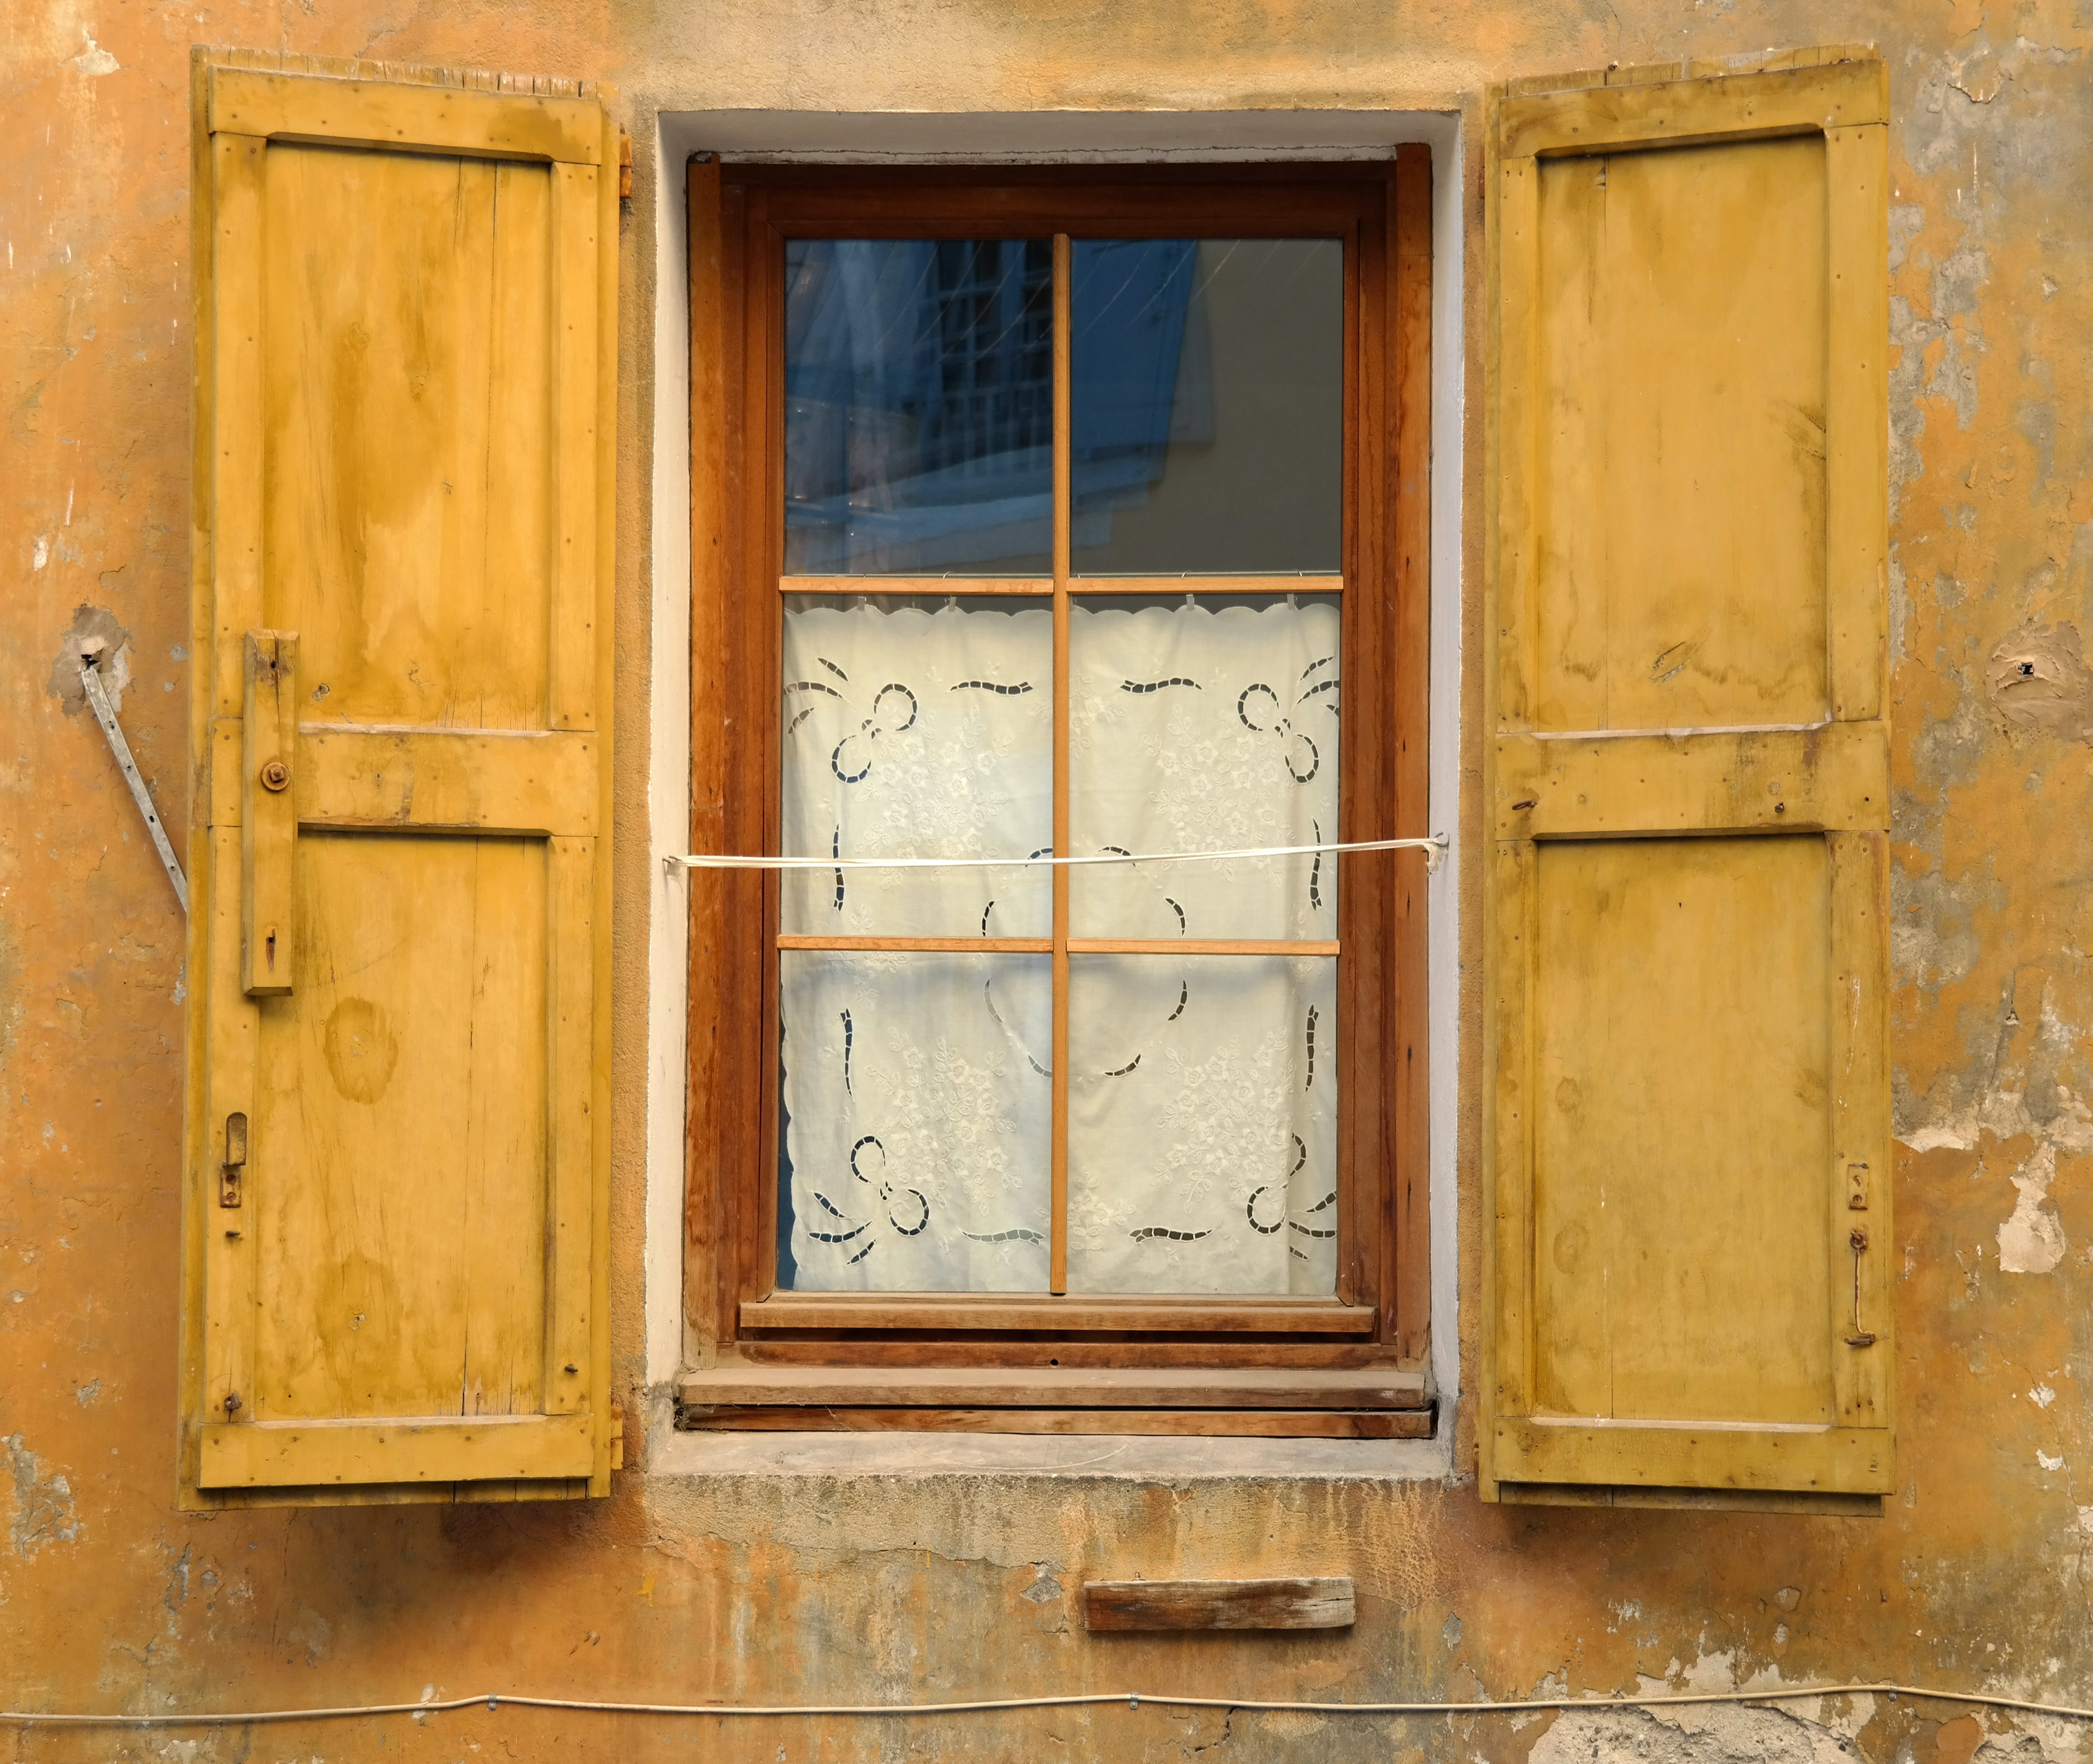 An open wooden glass window covered with a white sheet showing the reflection of another window of blue color.